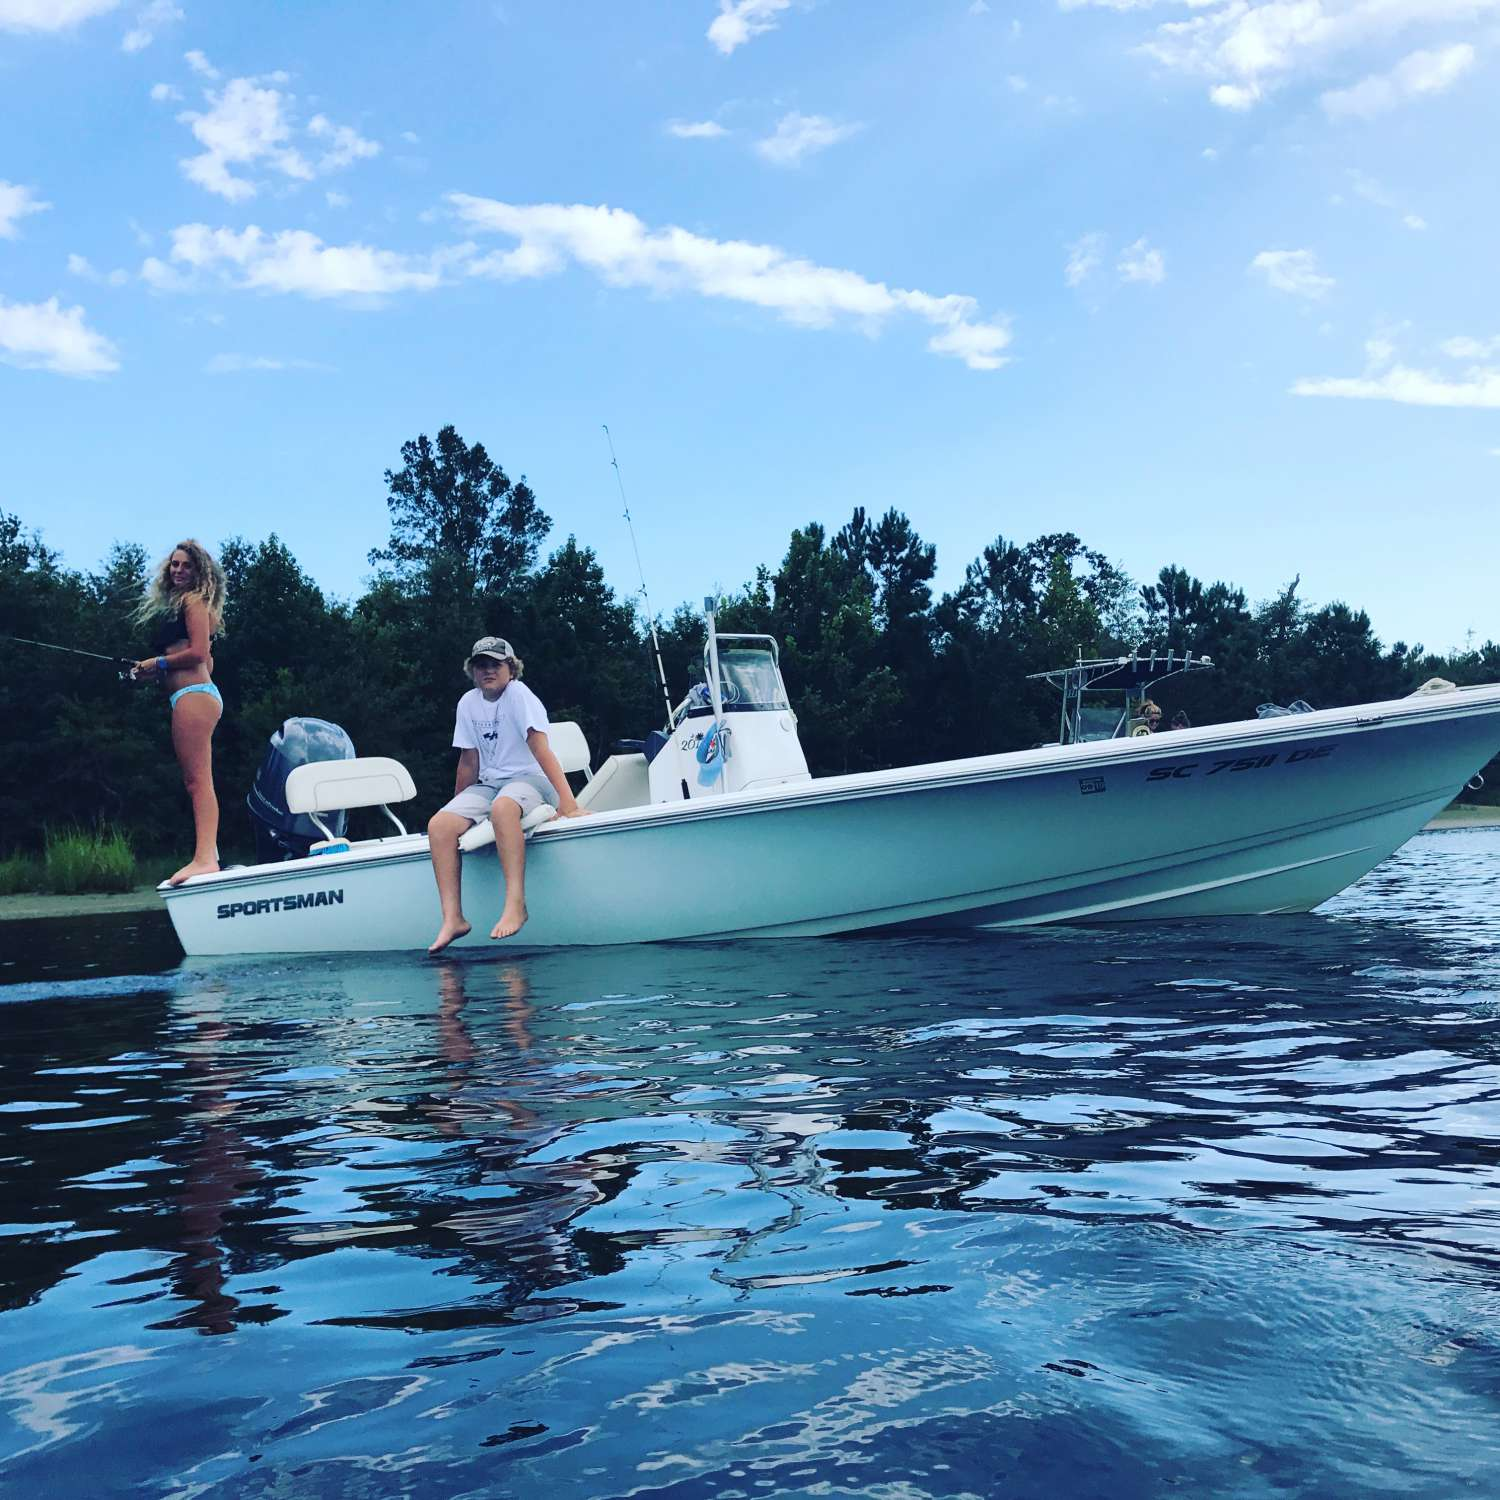 Title: Last Days Of The Summer - On board their Sportsman Island Bay 20 Bay Boat - Location: Surfside Beach, South Carolina. Participating in the Photo Contest #SportsmanAugust2017